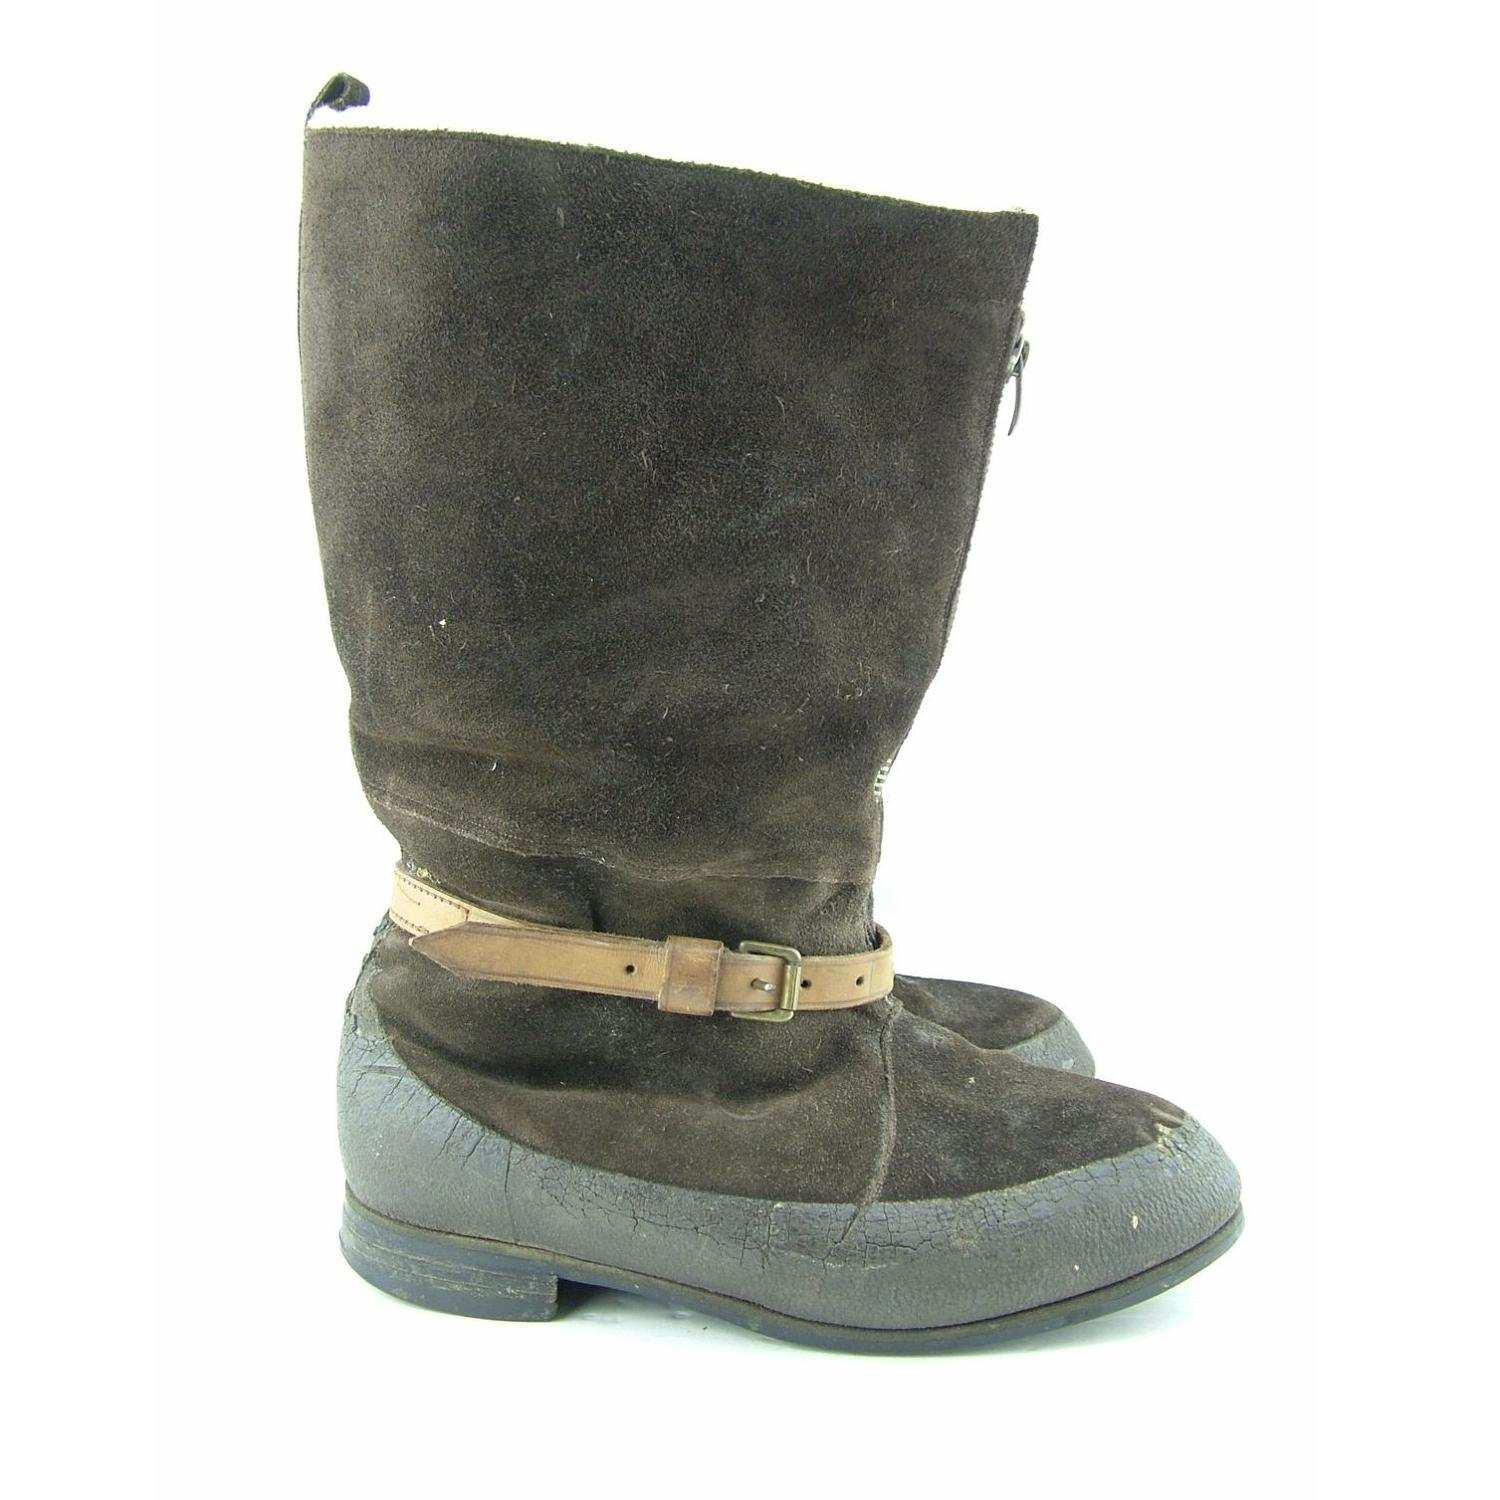 RAF 1941 pattern flying boots S7